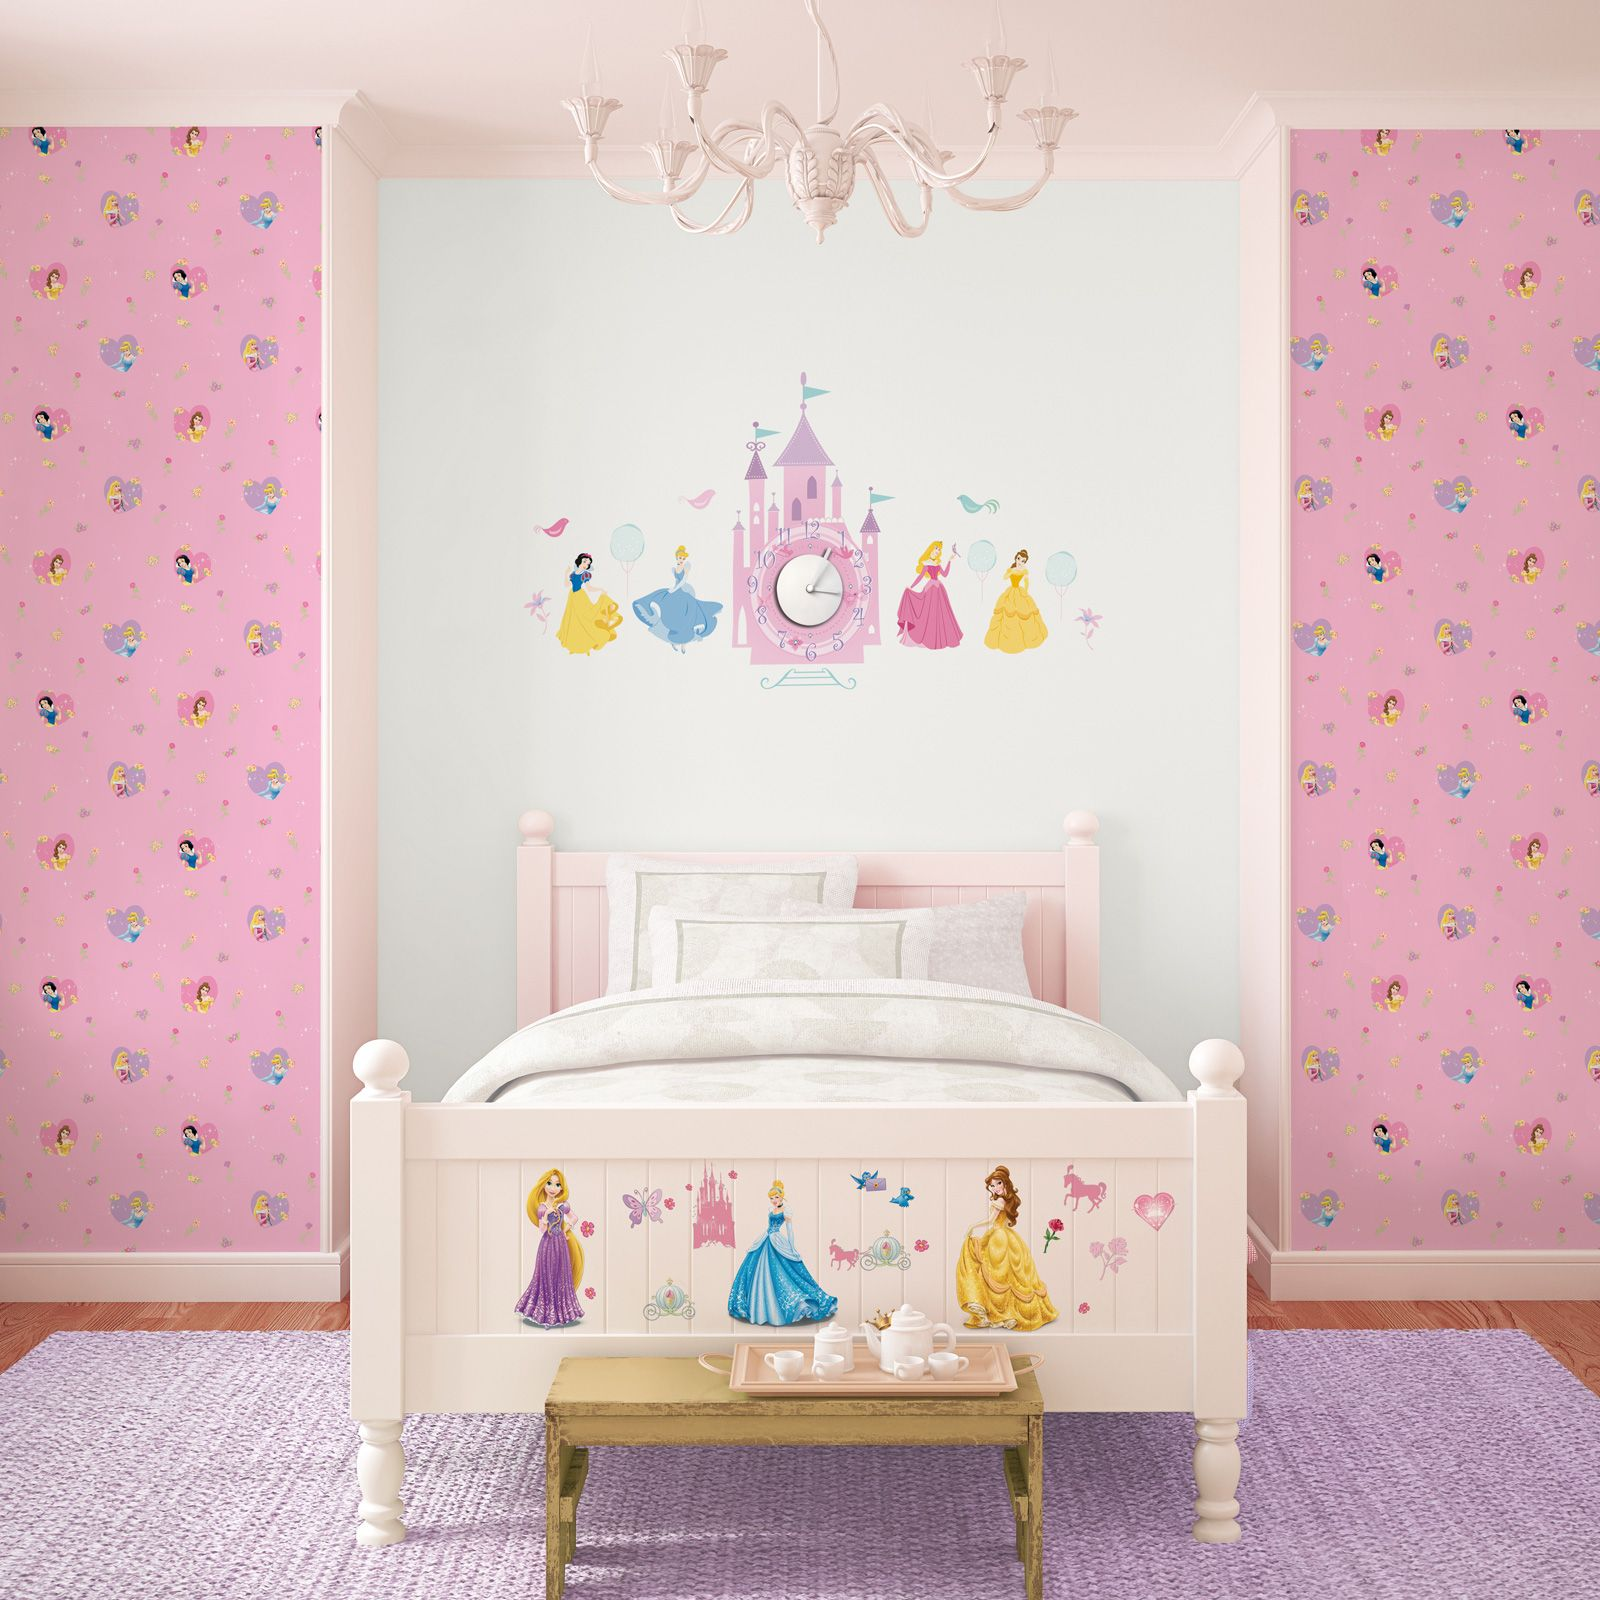 Free download Details about Childrens Bedroom Wallpaper ...